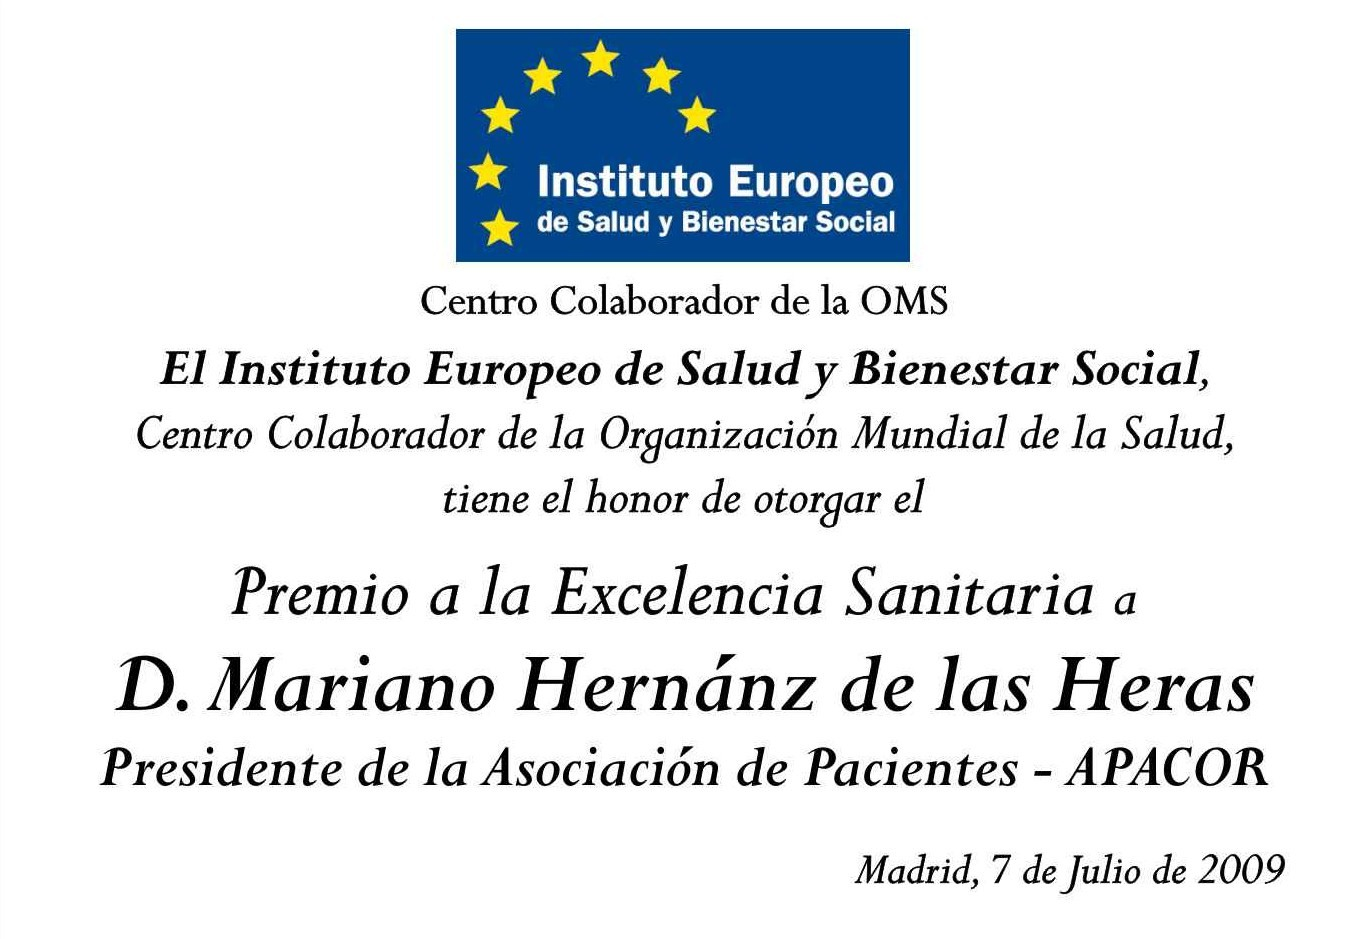 placas_instituto_europeo.jpg